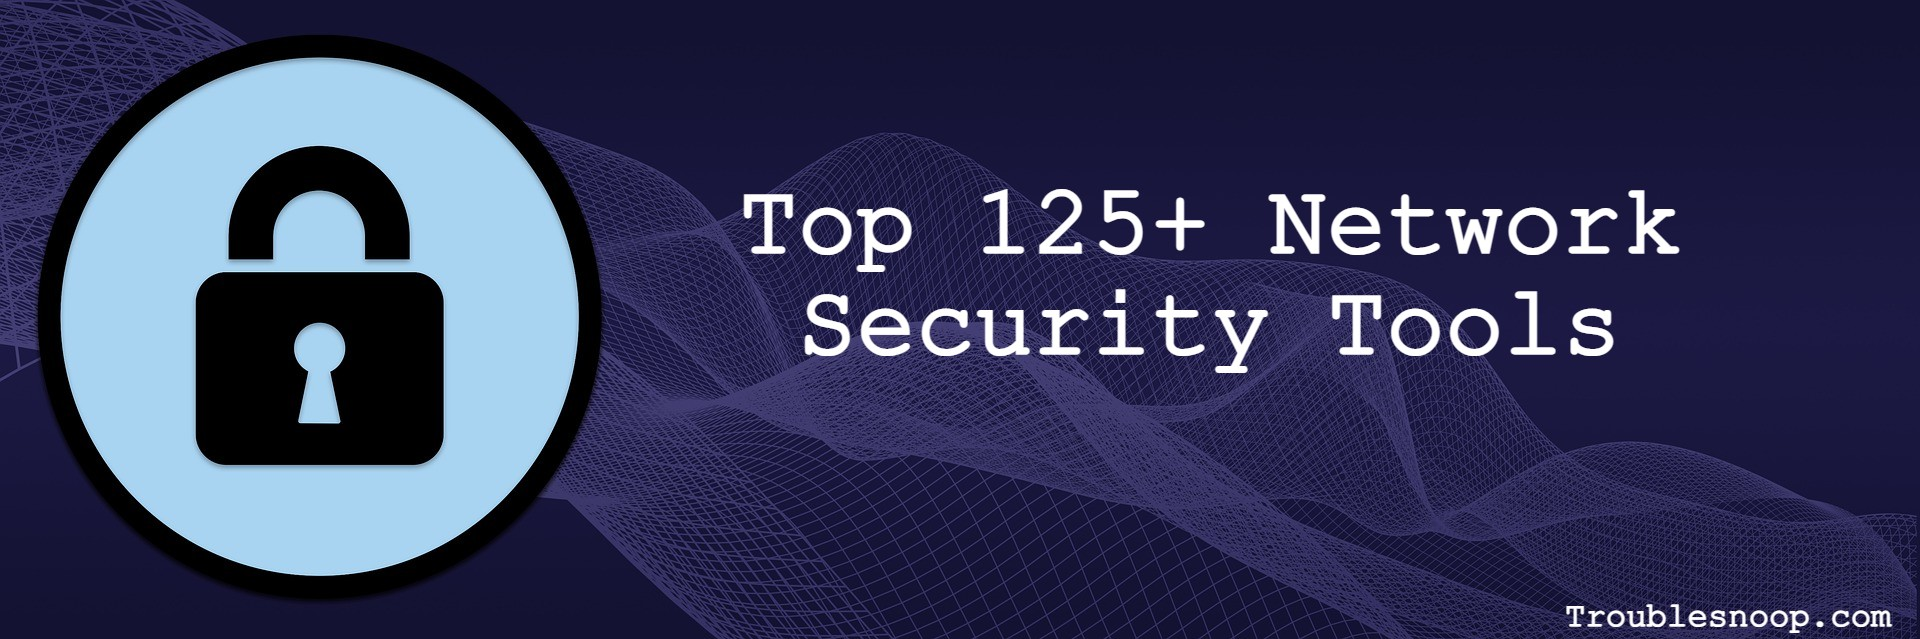 Top 125+ Network Security Tools